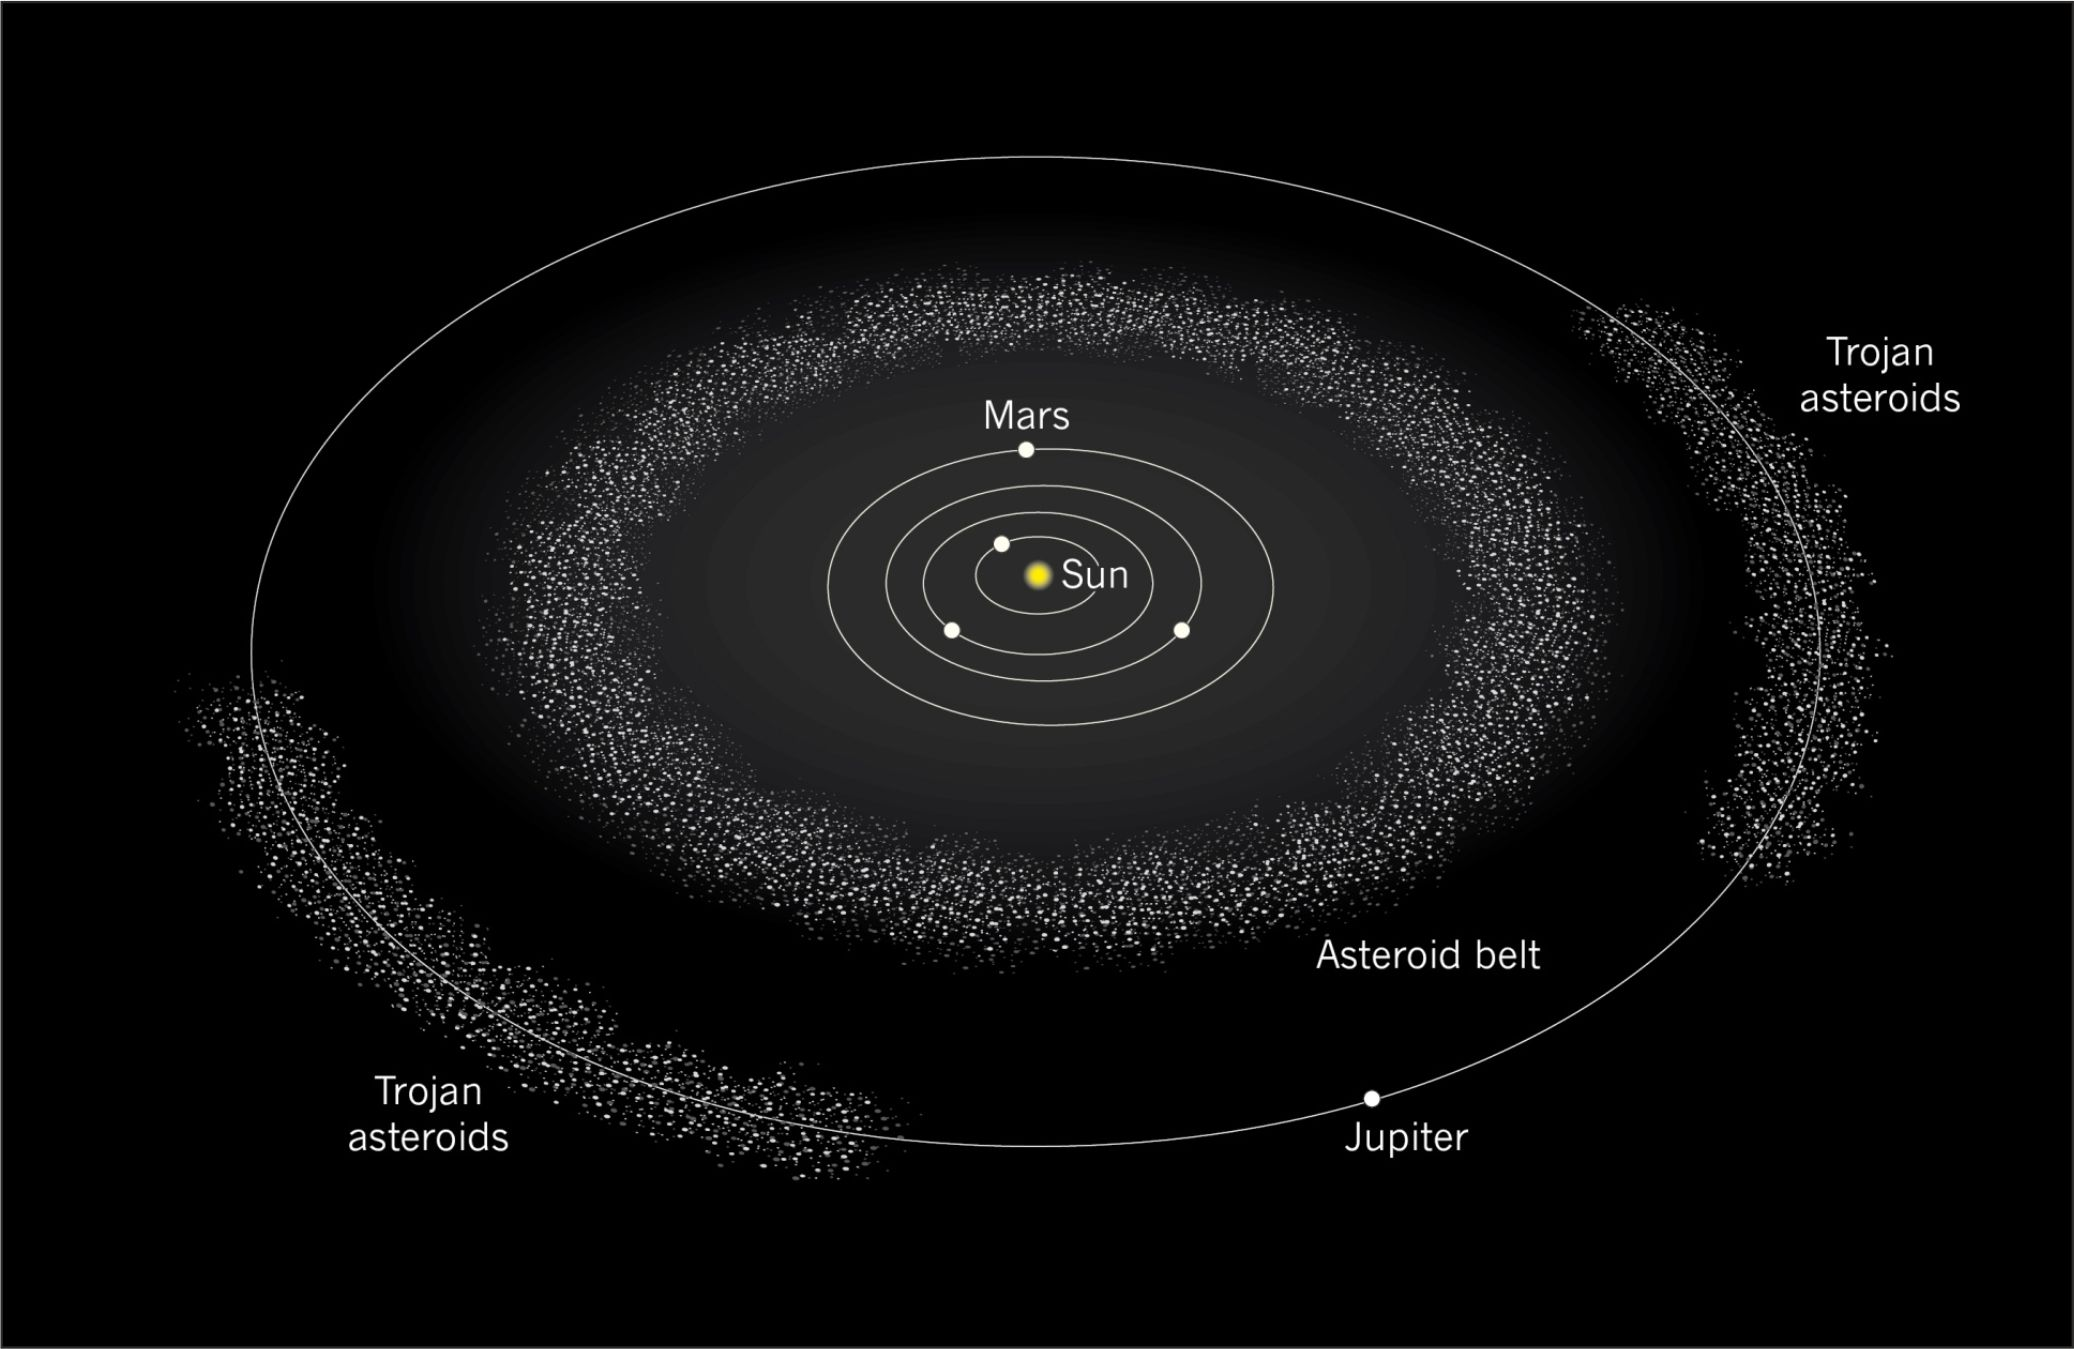 asteroid belt diagram - photo #12